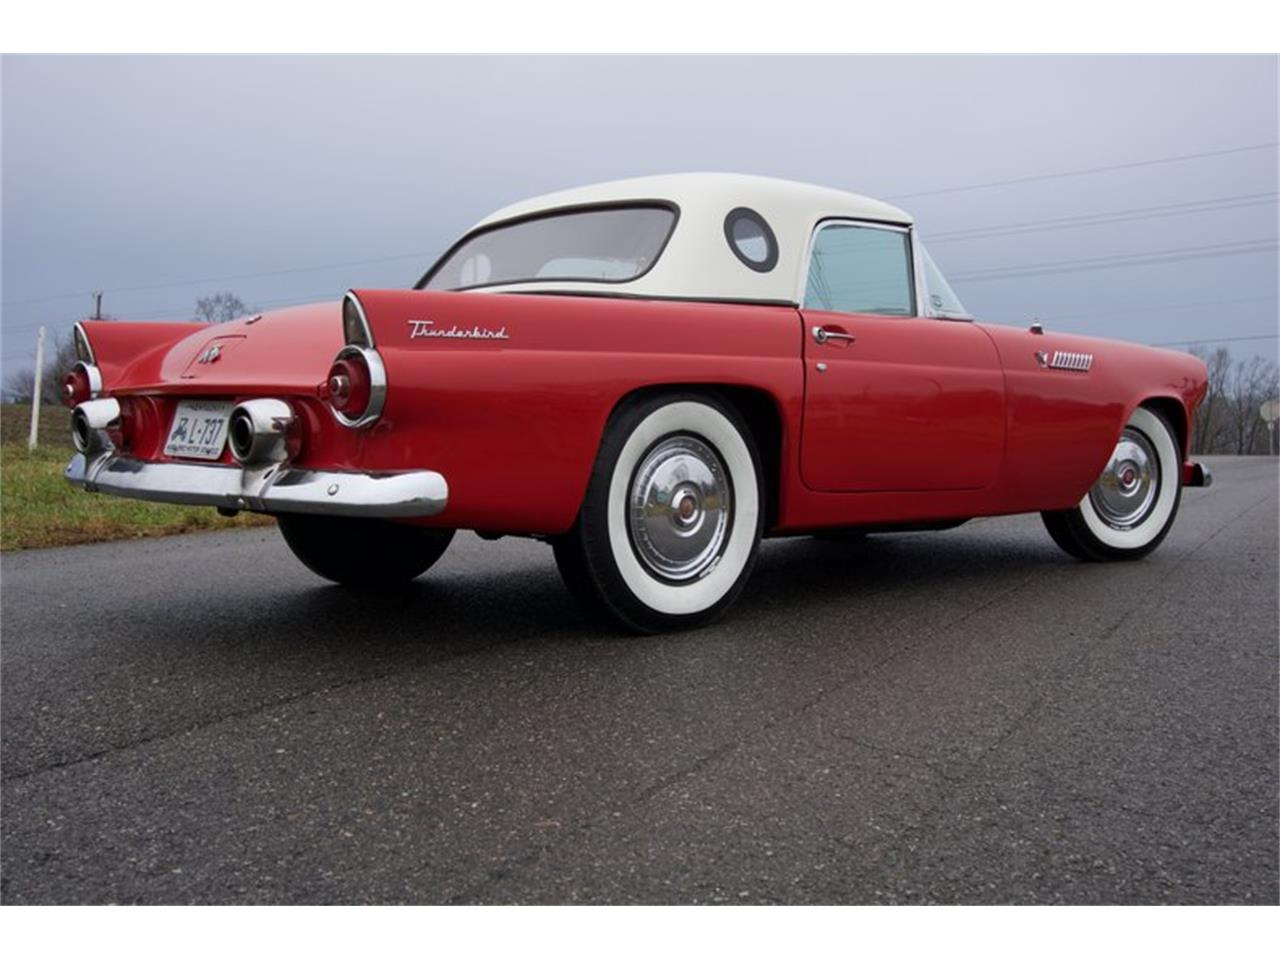 Large Picture of '55 Thunderbird located in Greensboro North Carolina Auction Vehicle Offered by GAA Classic Cars Auctions - PDHS